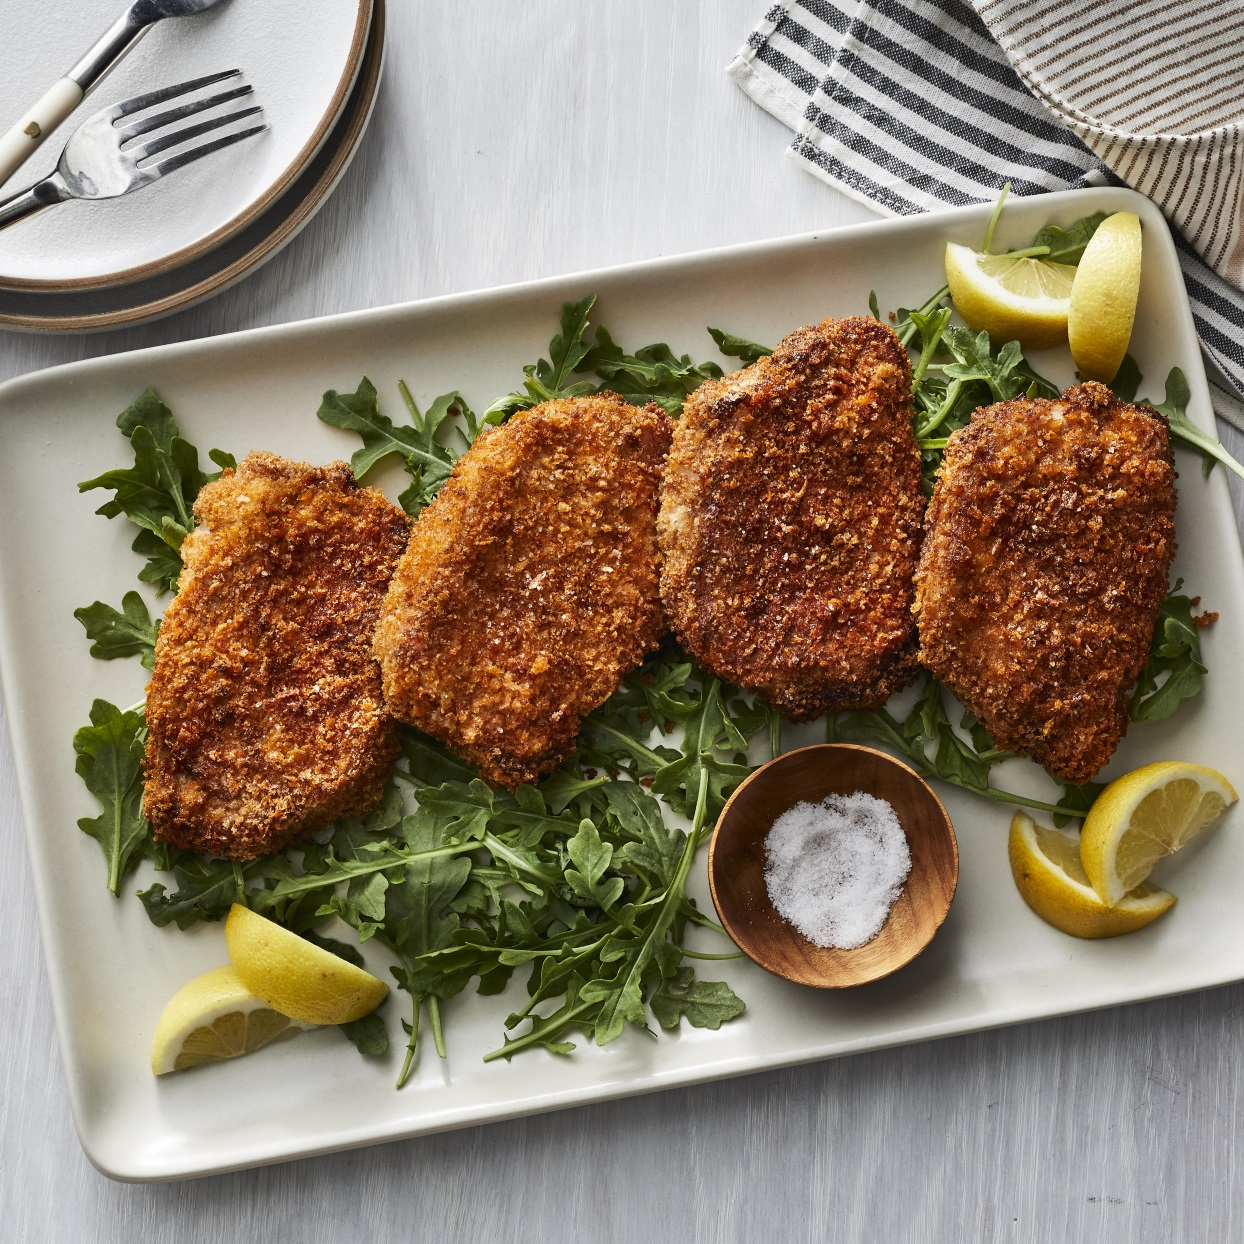 These crispy breaded air-fryer pork chops don't require a lot of oil to create a deep-fried crispy crust. Serve them with your favorite dipping sauce or alongside roasted veggies. Want to double the recipe? Depending on the size of your air fryer, you may have to cook the pork chops in batches, but that's easy to do. Source: EatingWell.com, December 2019